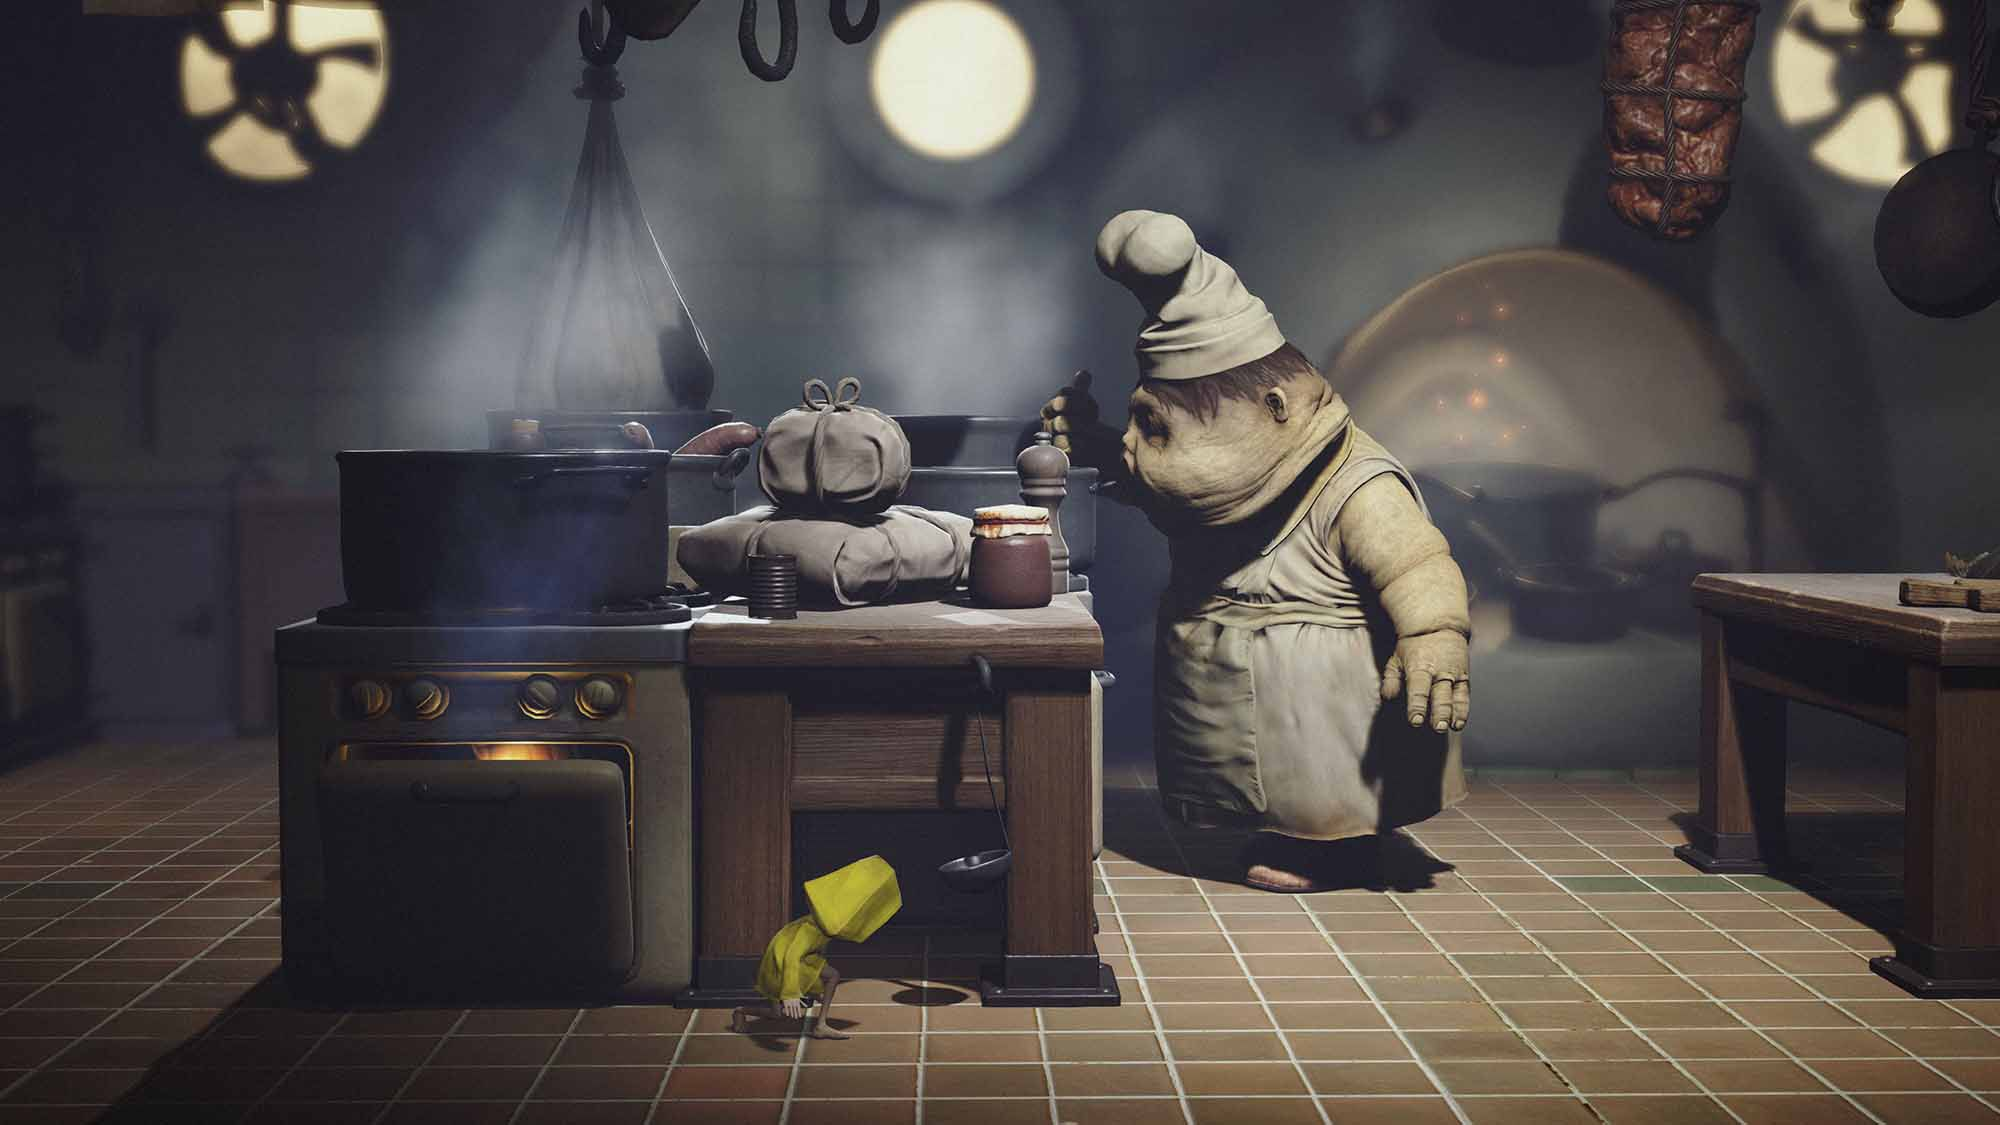 Review: Little Nightmares - Slant Magazine